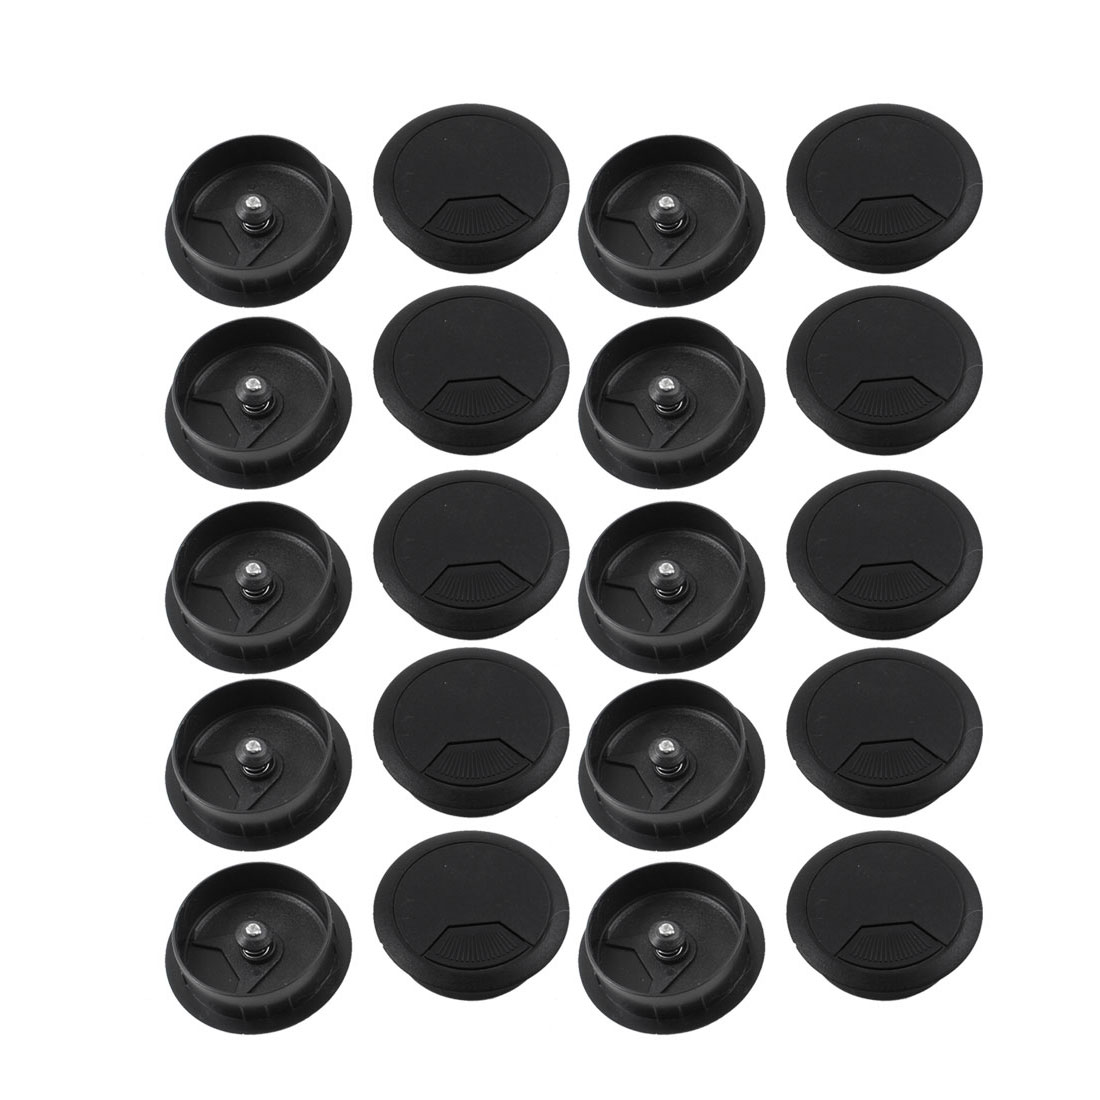 20 Pcs PC Computer Desk 48mm Diameter Black Plastic Cable Hole Cover Grommet